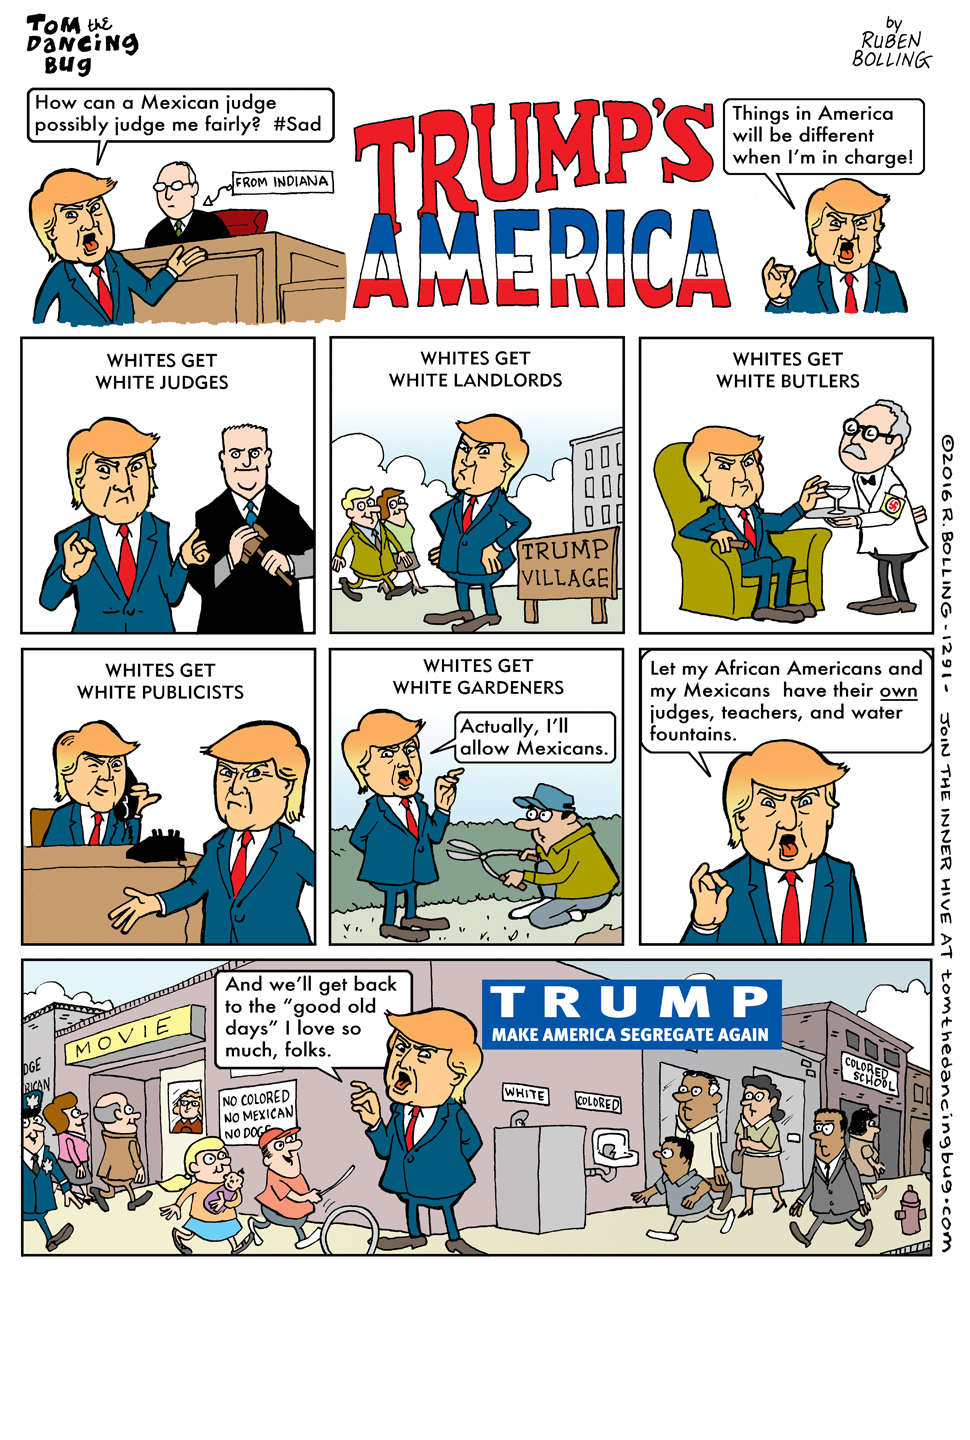 Another political cartoon, this time by Ruben Bolling, criticizing what Trump has said about minorities and comparing him to what